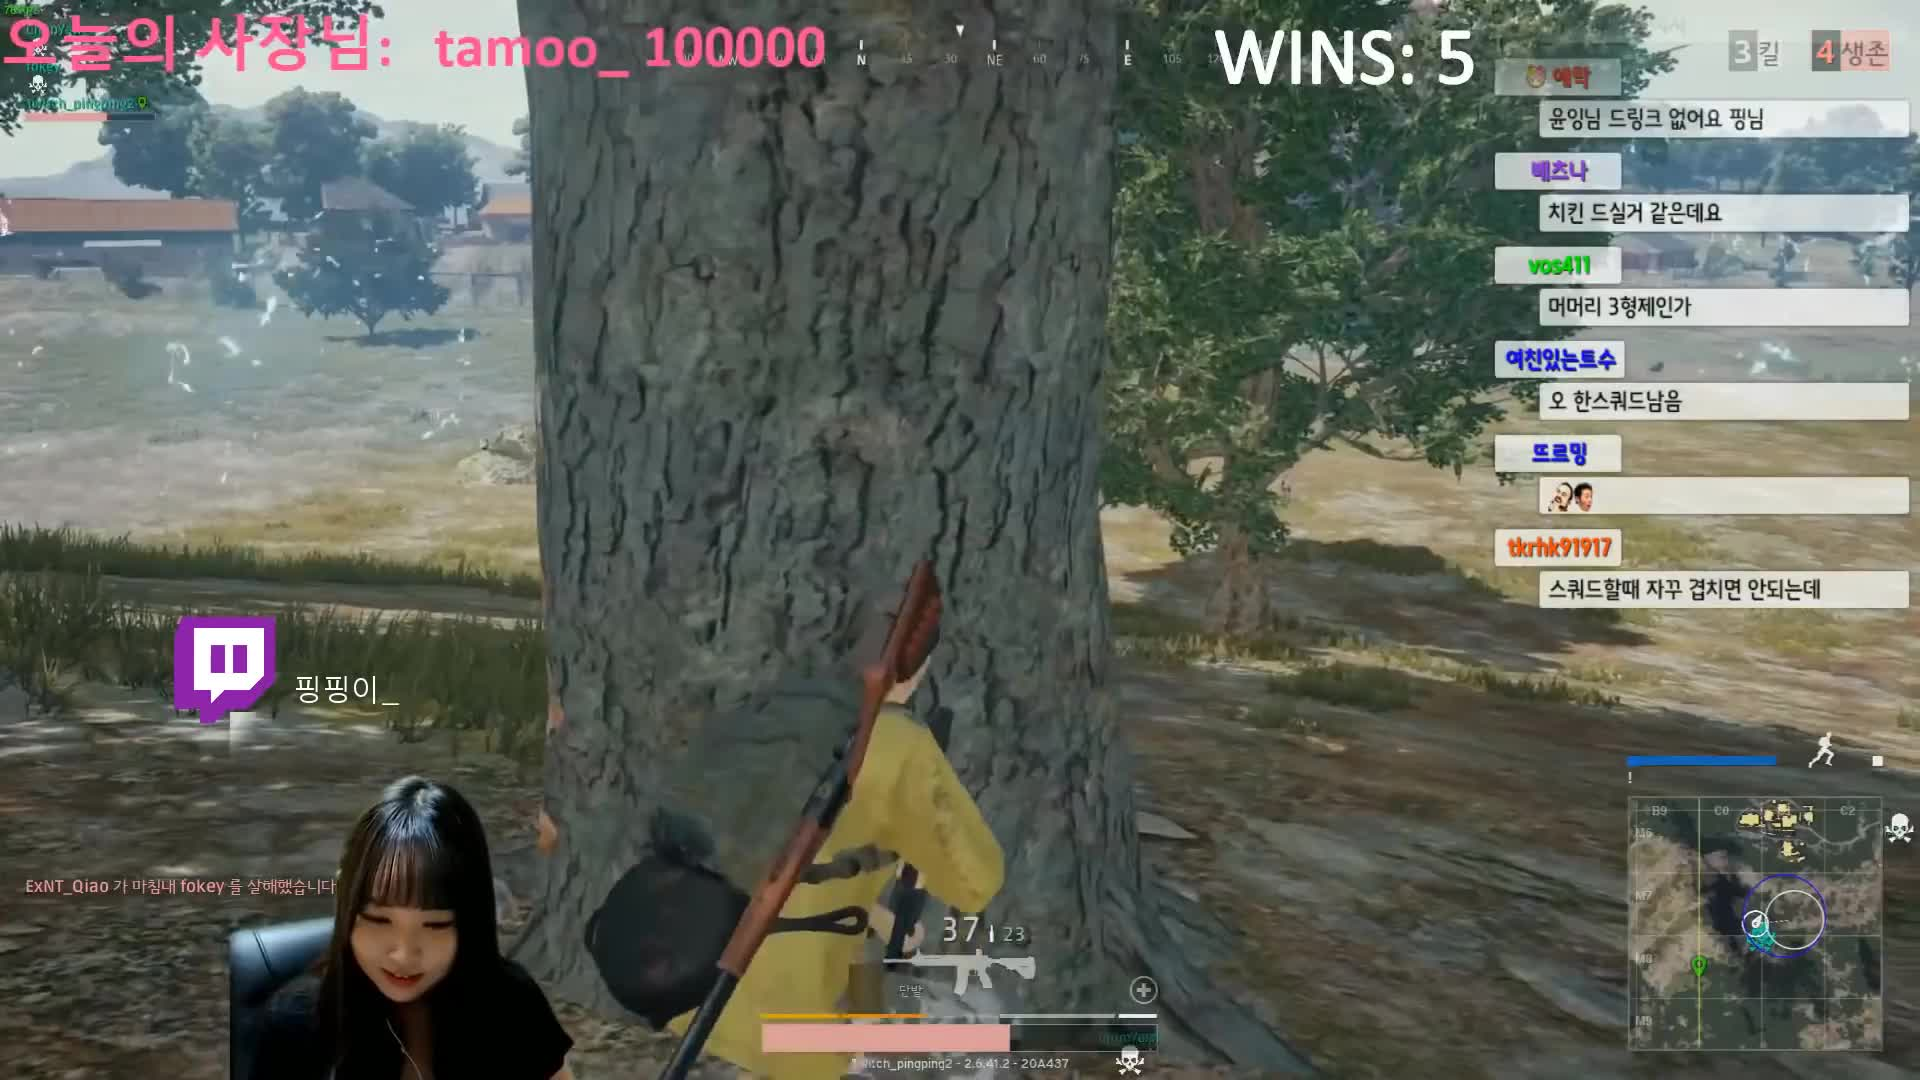 PUBG, drdisrespect, forsen, lirik, pubg funny, pubg gameplay, pubg highlights, shroud, stream, summit1g, That's why we like Vaulting - Best of PUBG #107 - Funny/Highlight/Stream Moments GIFs